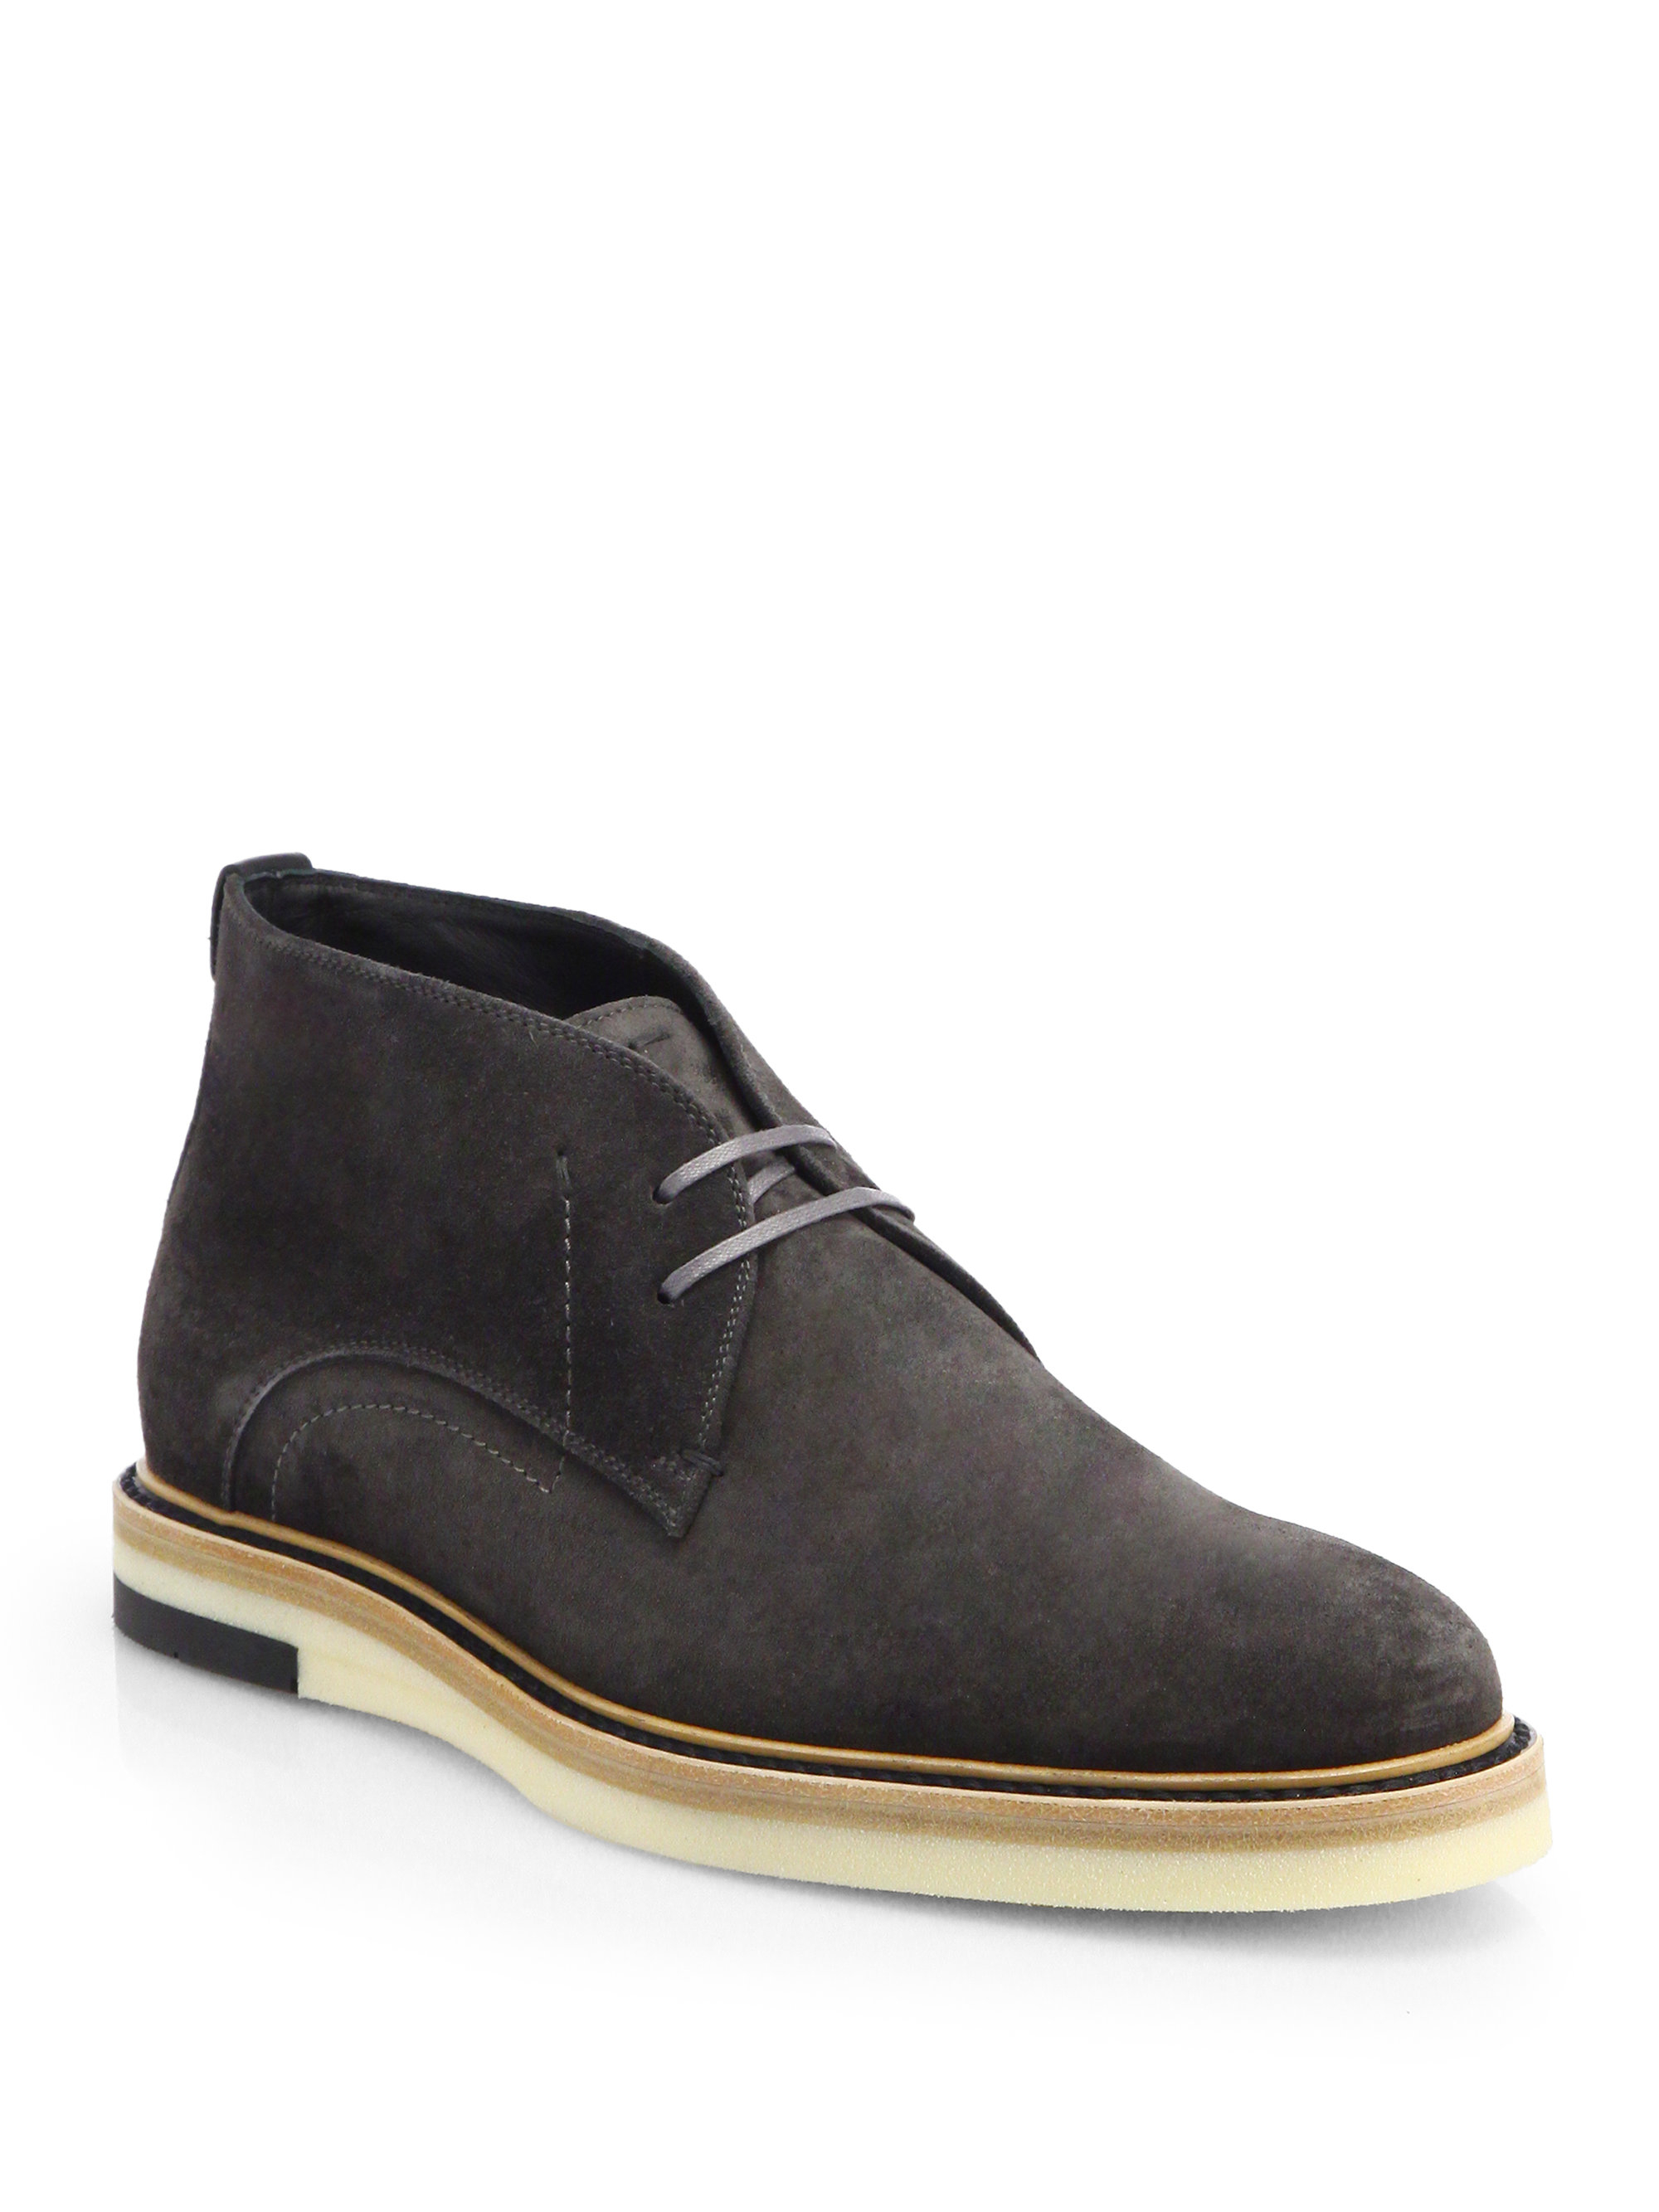 Lyst Fendi Suede Chukka Boots In Black For Men